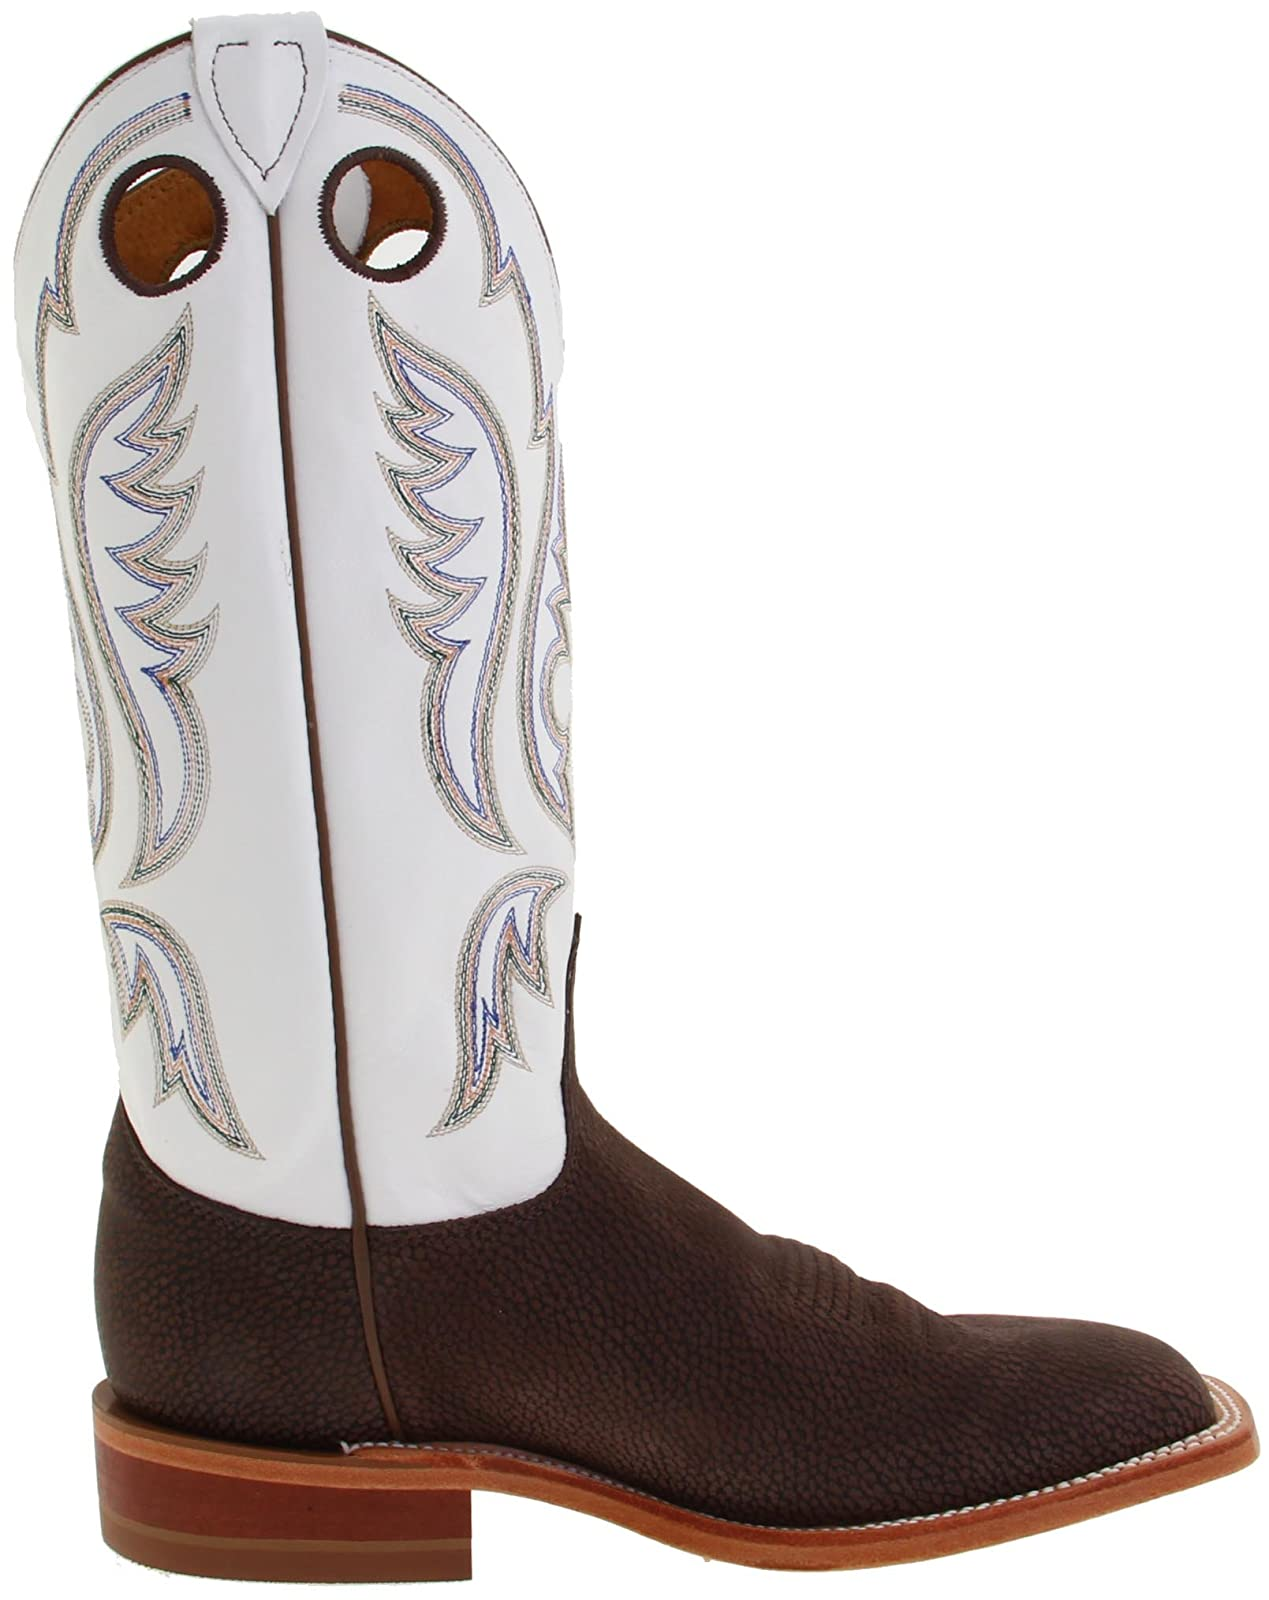 Justin Boots Men's U.S.A. Chocolate Bisonte/White Classic - 6